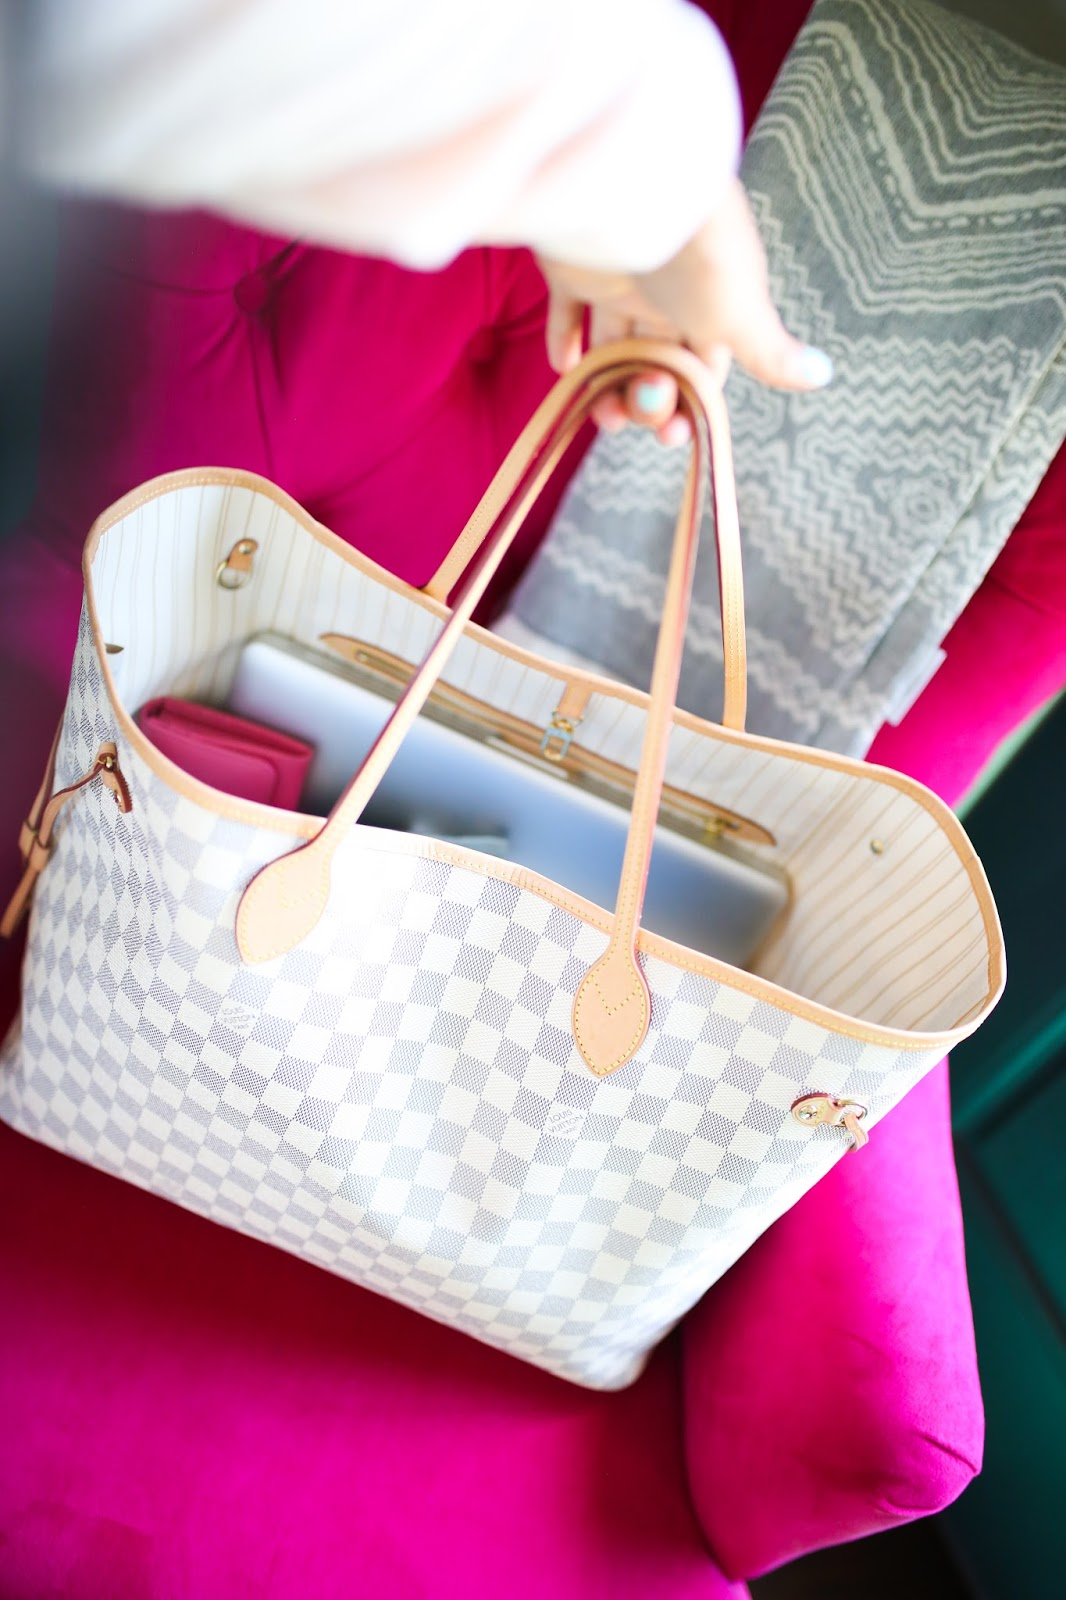 Lv Neverfull Pm Size In Cm Ahoy Comics